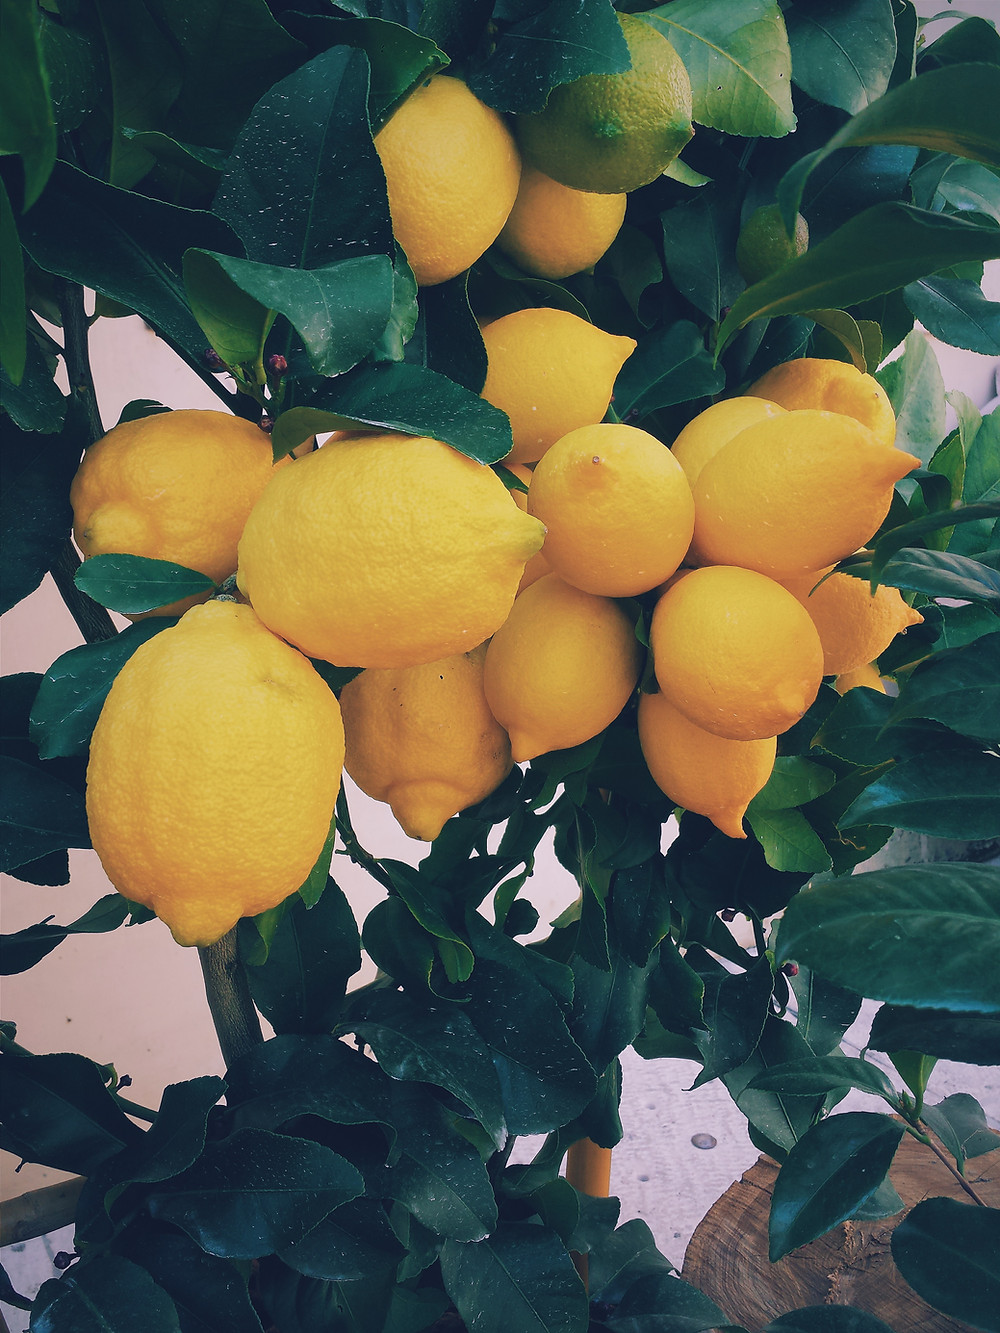 lemons contain nerol terpenes